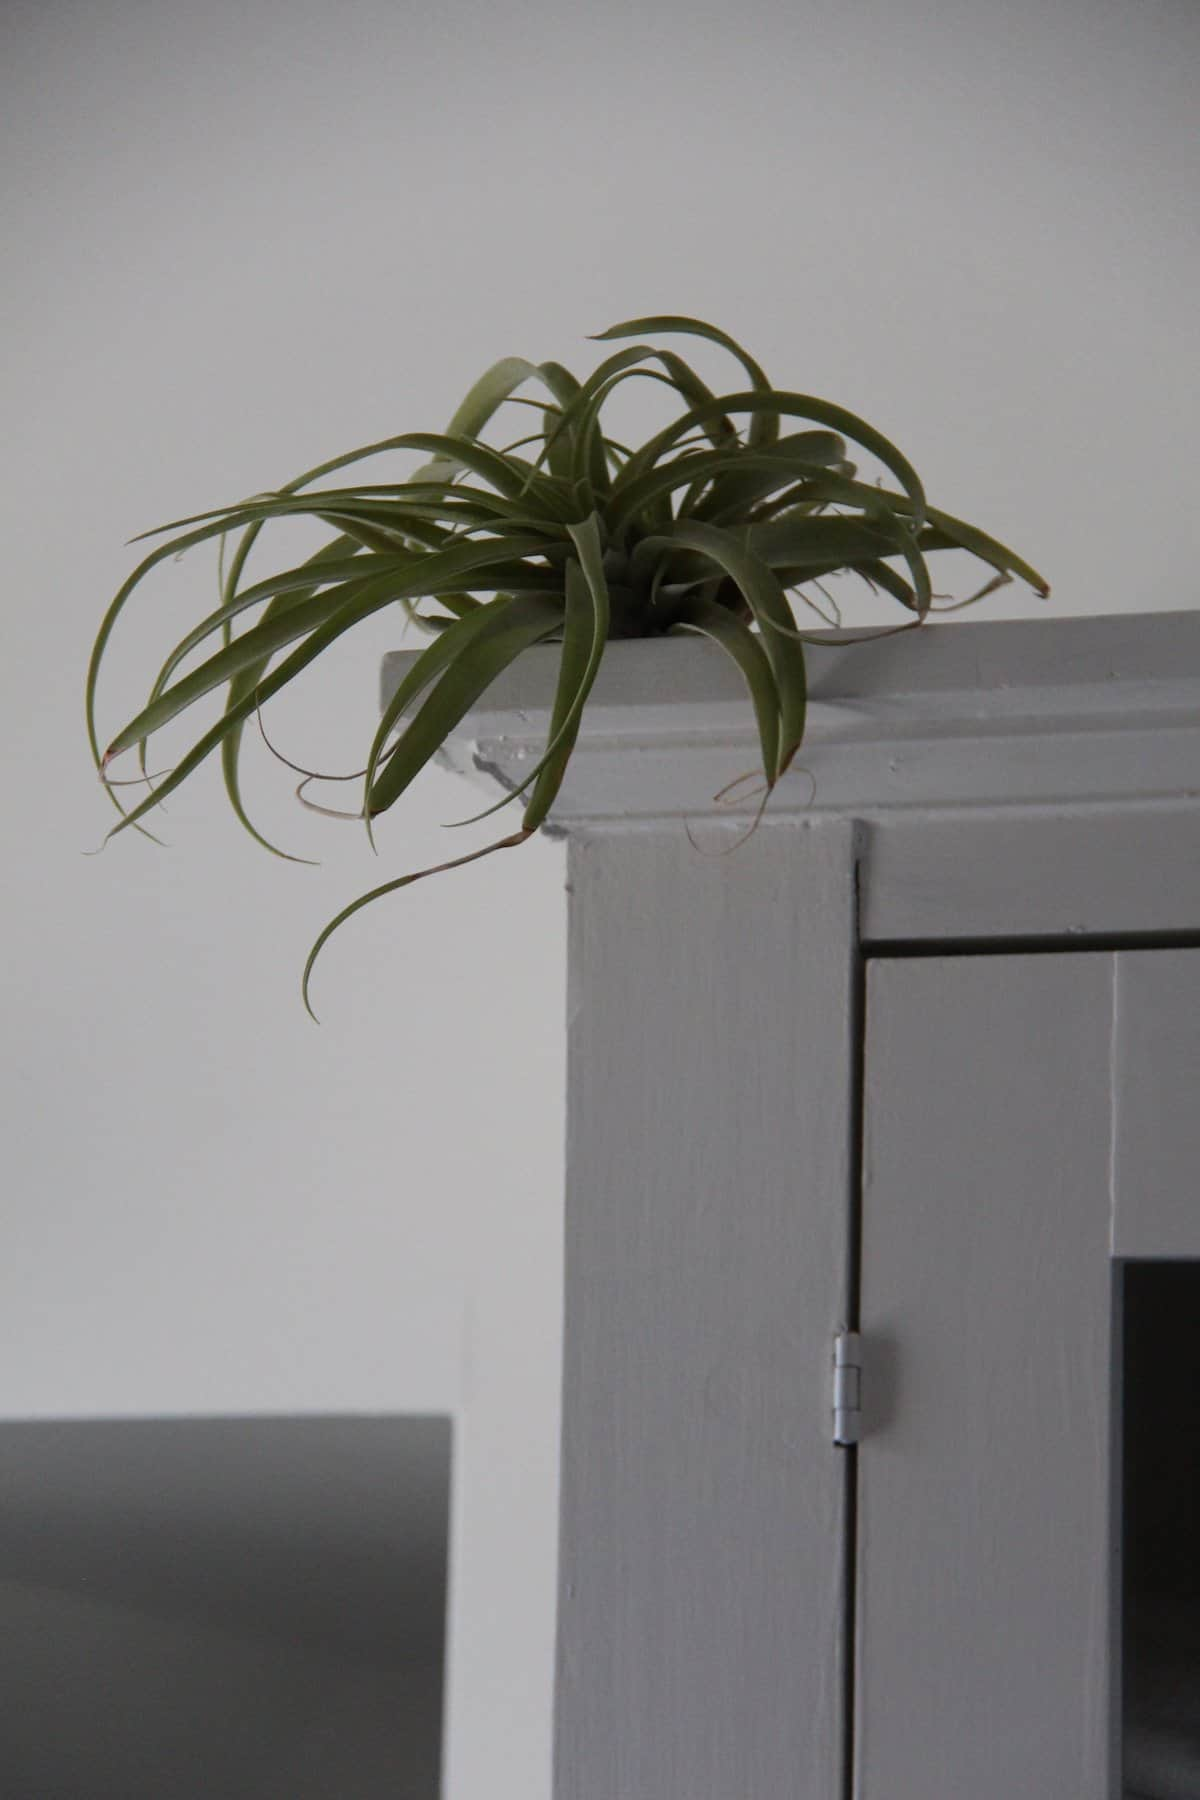 green tillandsia air plant on top of white cabinet against white wall